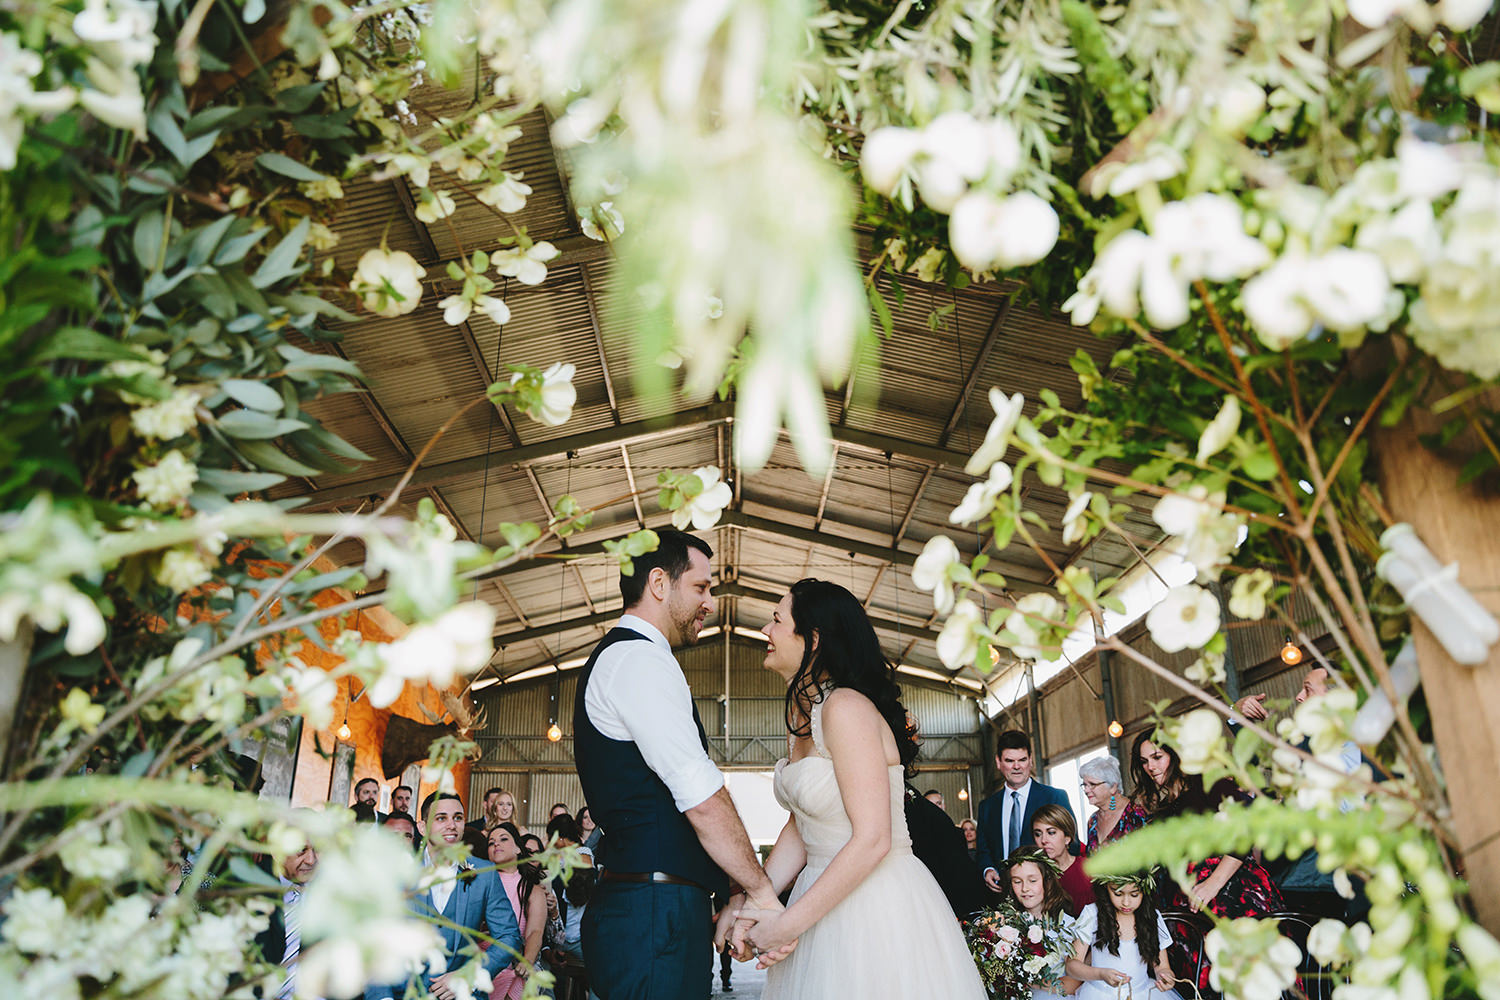 Melbourne_Winery_Wedding_Chris_Merrily088.JPG